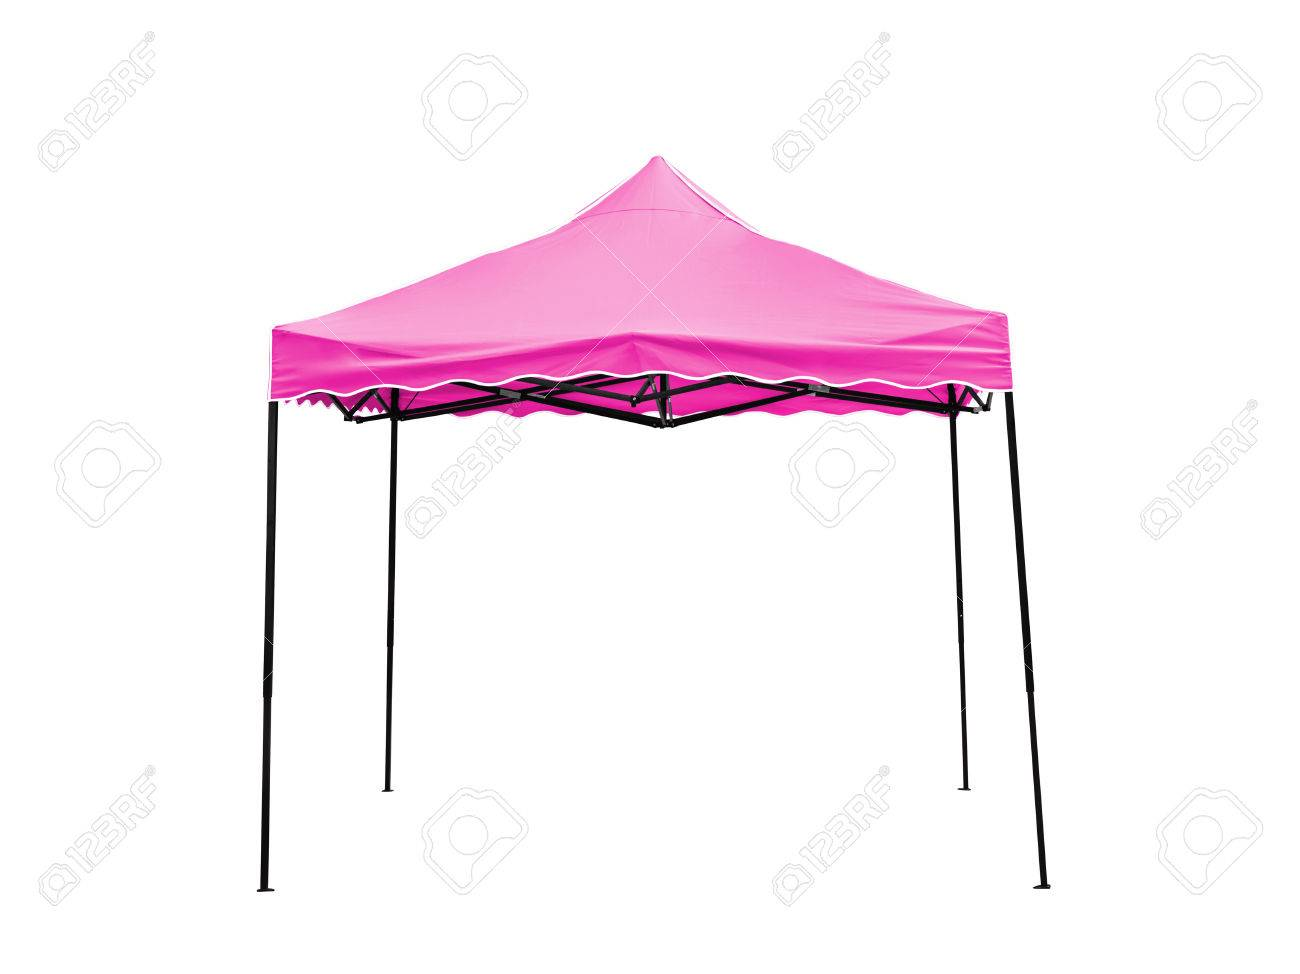 Pop Up gazebo Pink rain tent on white backgroundWork with clipping path.  sc 1 st  123RF.com & Pop Up Gazebo Pink Rain Tent On White BackgroundWork With Clipping ...